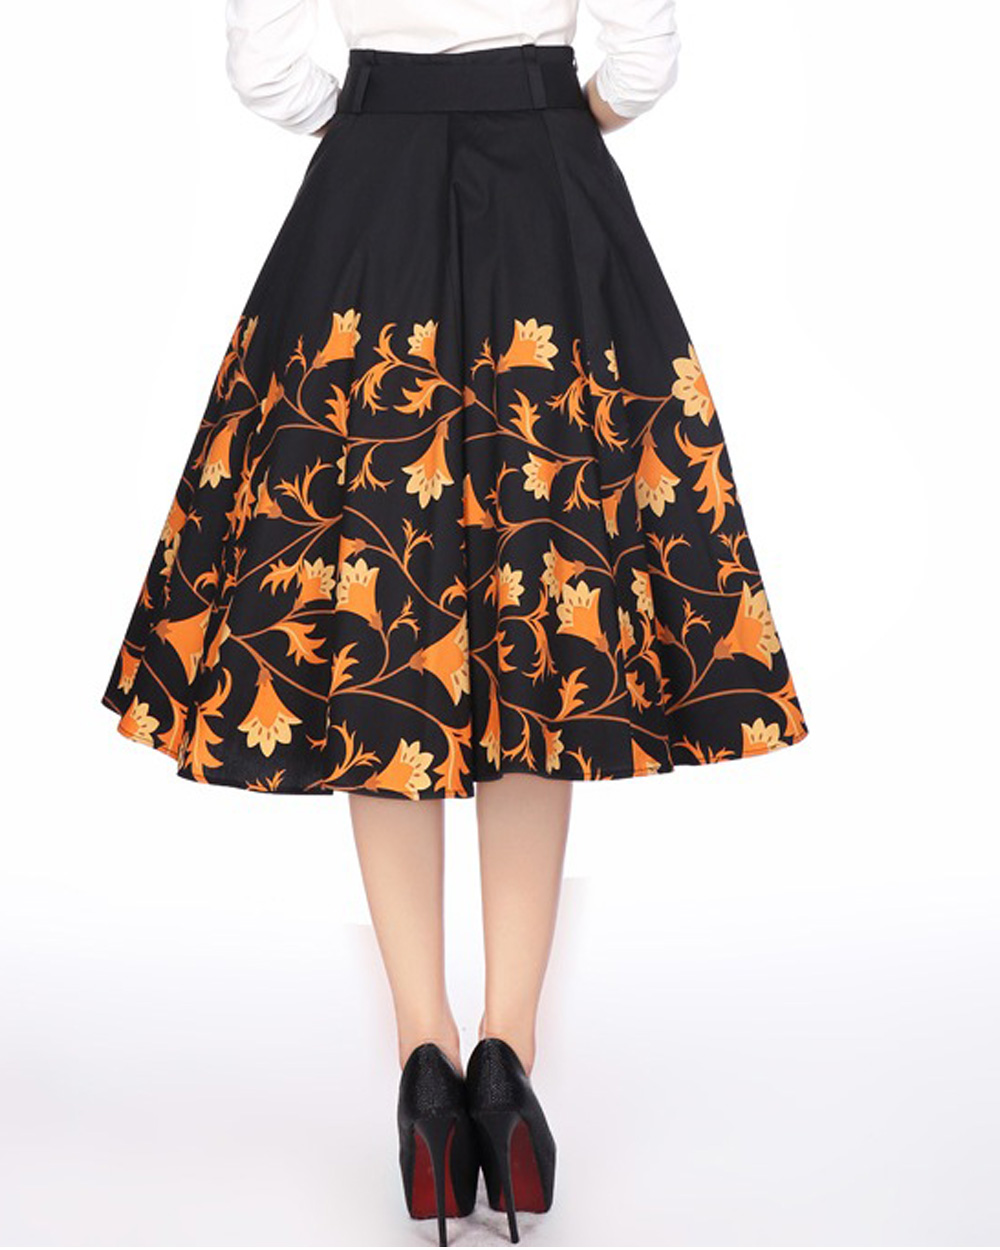 72e01e0f3 Details about RK106 1950s Floral Flower Circle Swing Dance Skirt Rockabilly  Pin Up Retro Rock